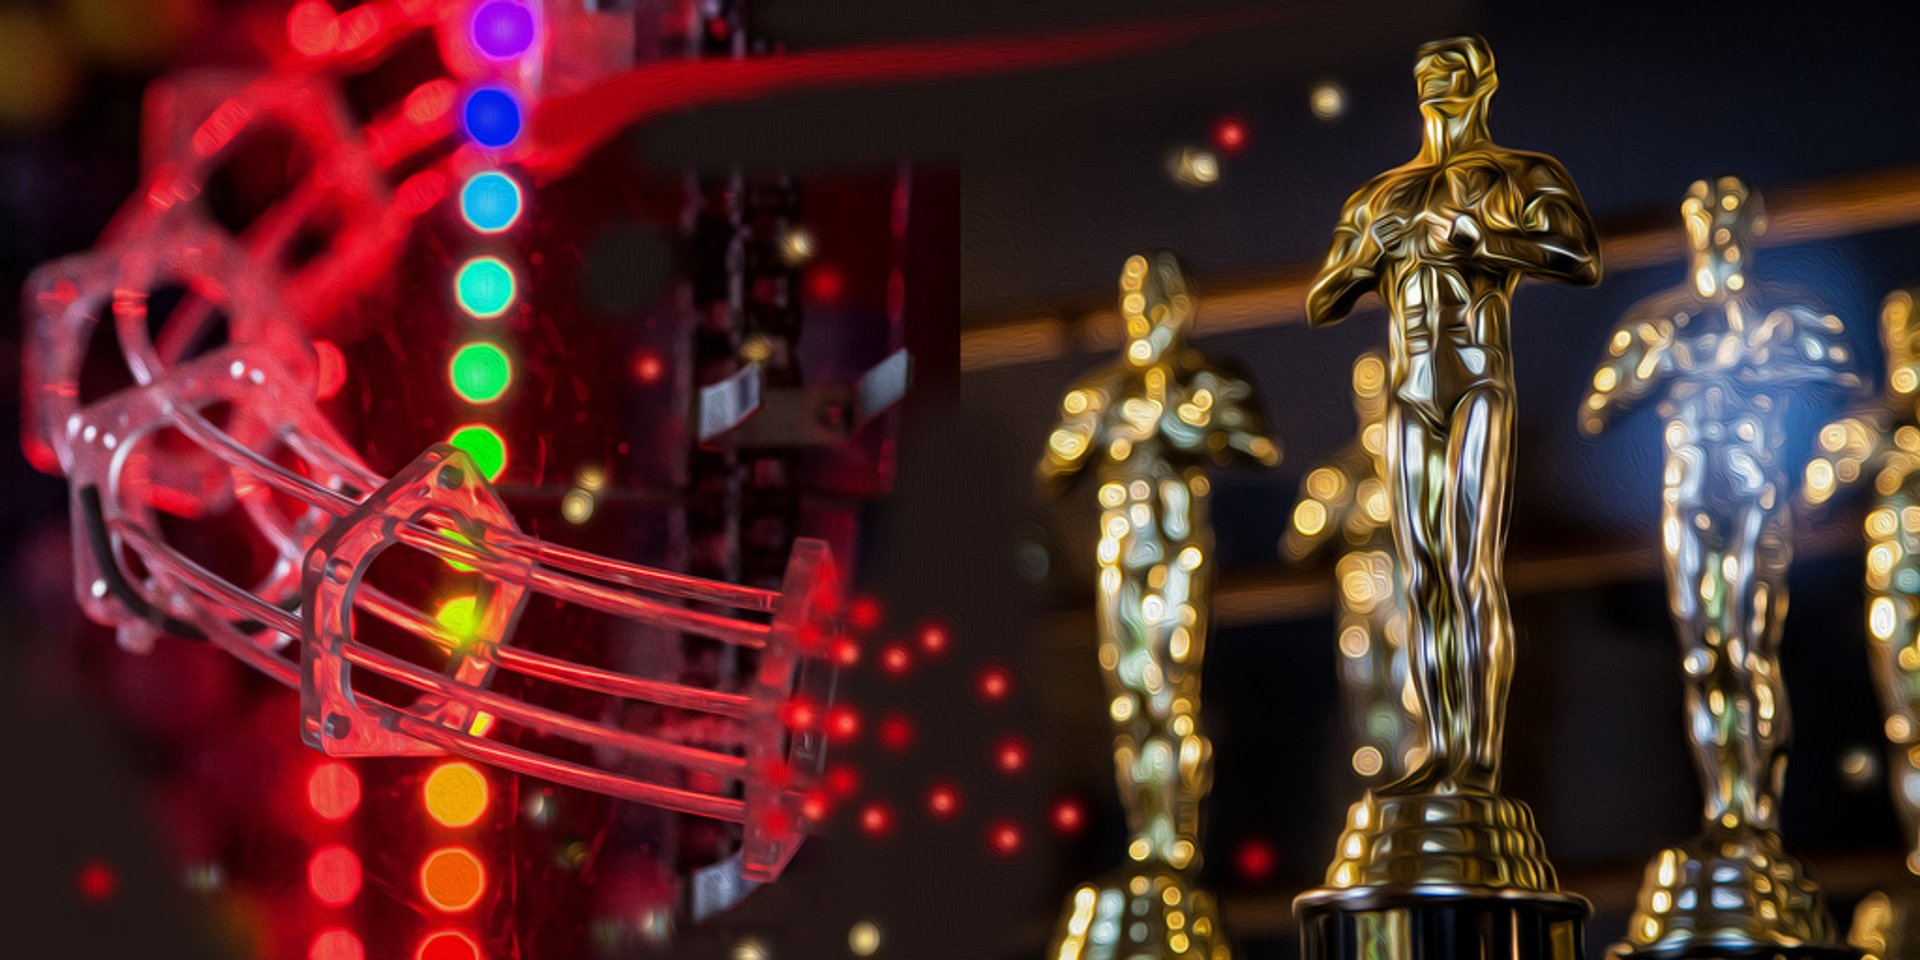 Academy Awards (Oscars) in Los Angeles 2019 - Best Time